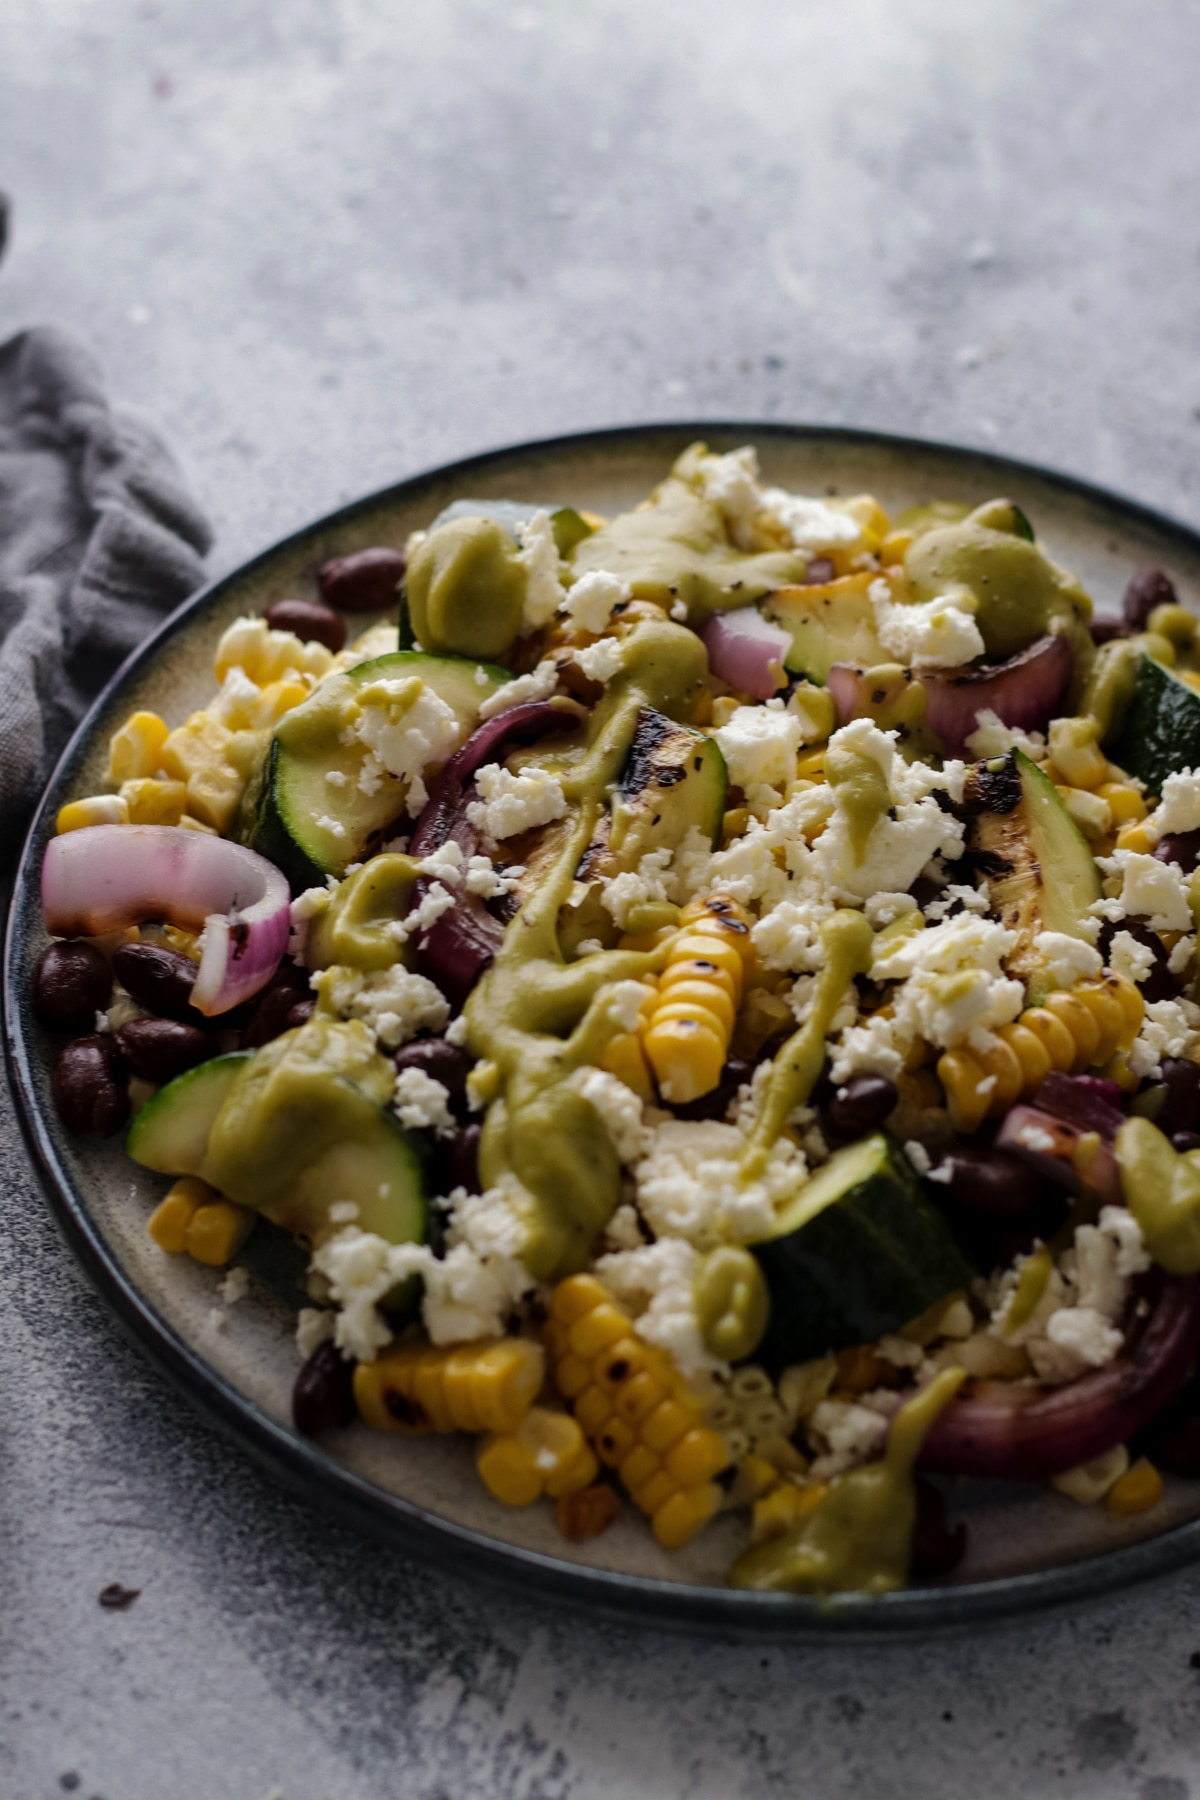 Grilled Zucchini and Corn Salad with Black Beans on a Plate on a Grey Background